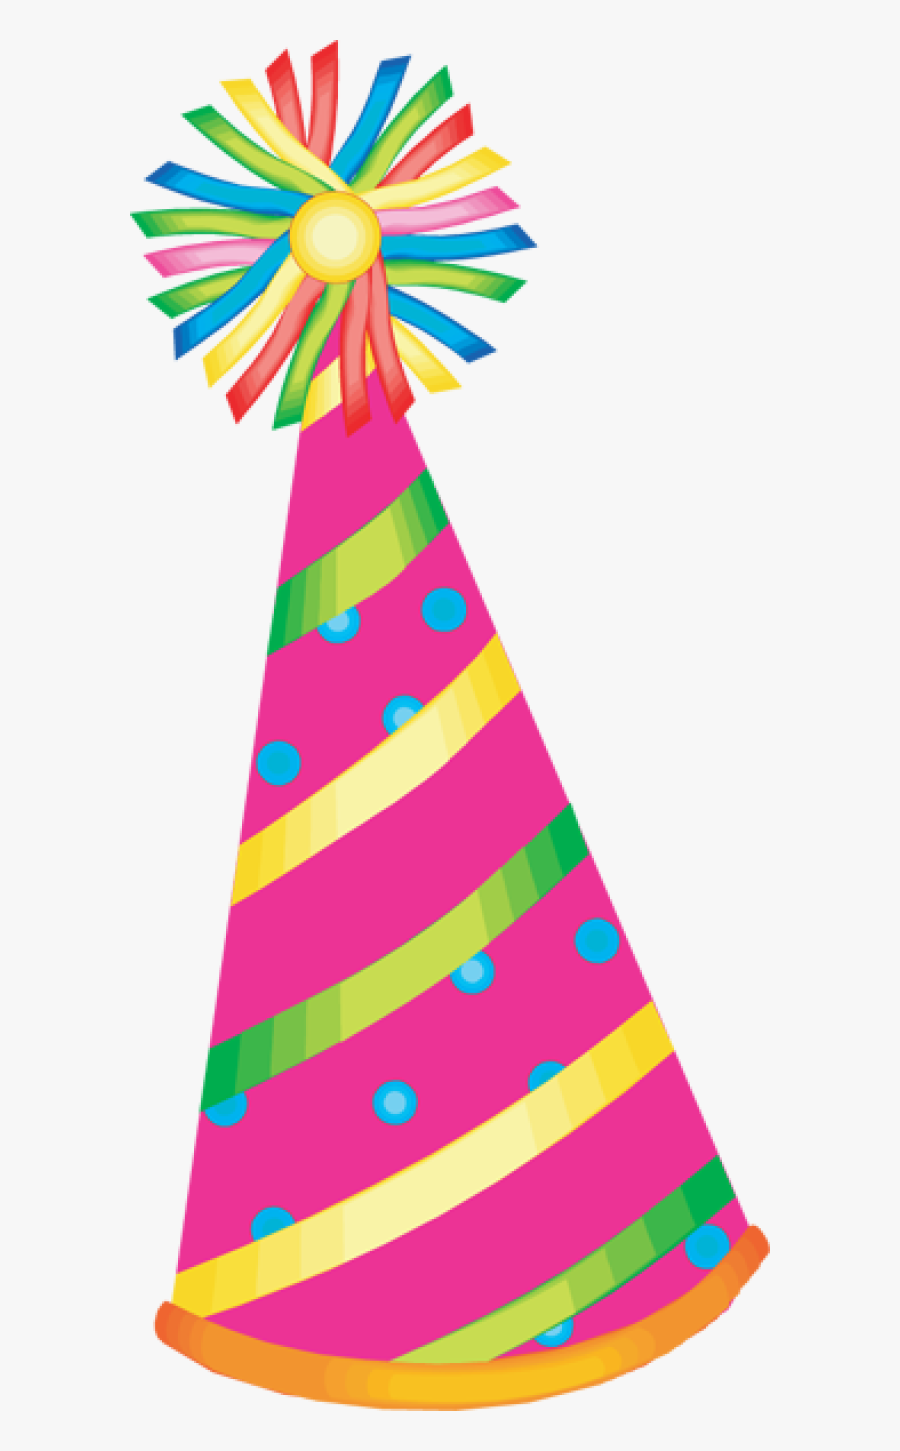 Party Hat Clipart - Transparent Background Birthday Hat Png, Transparent Clipart